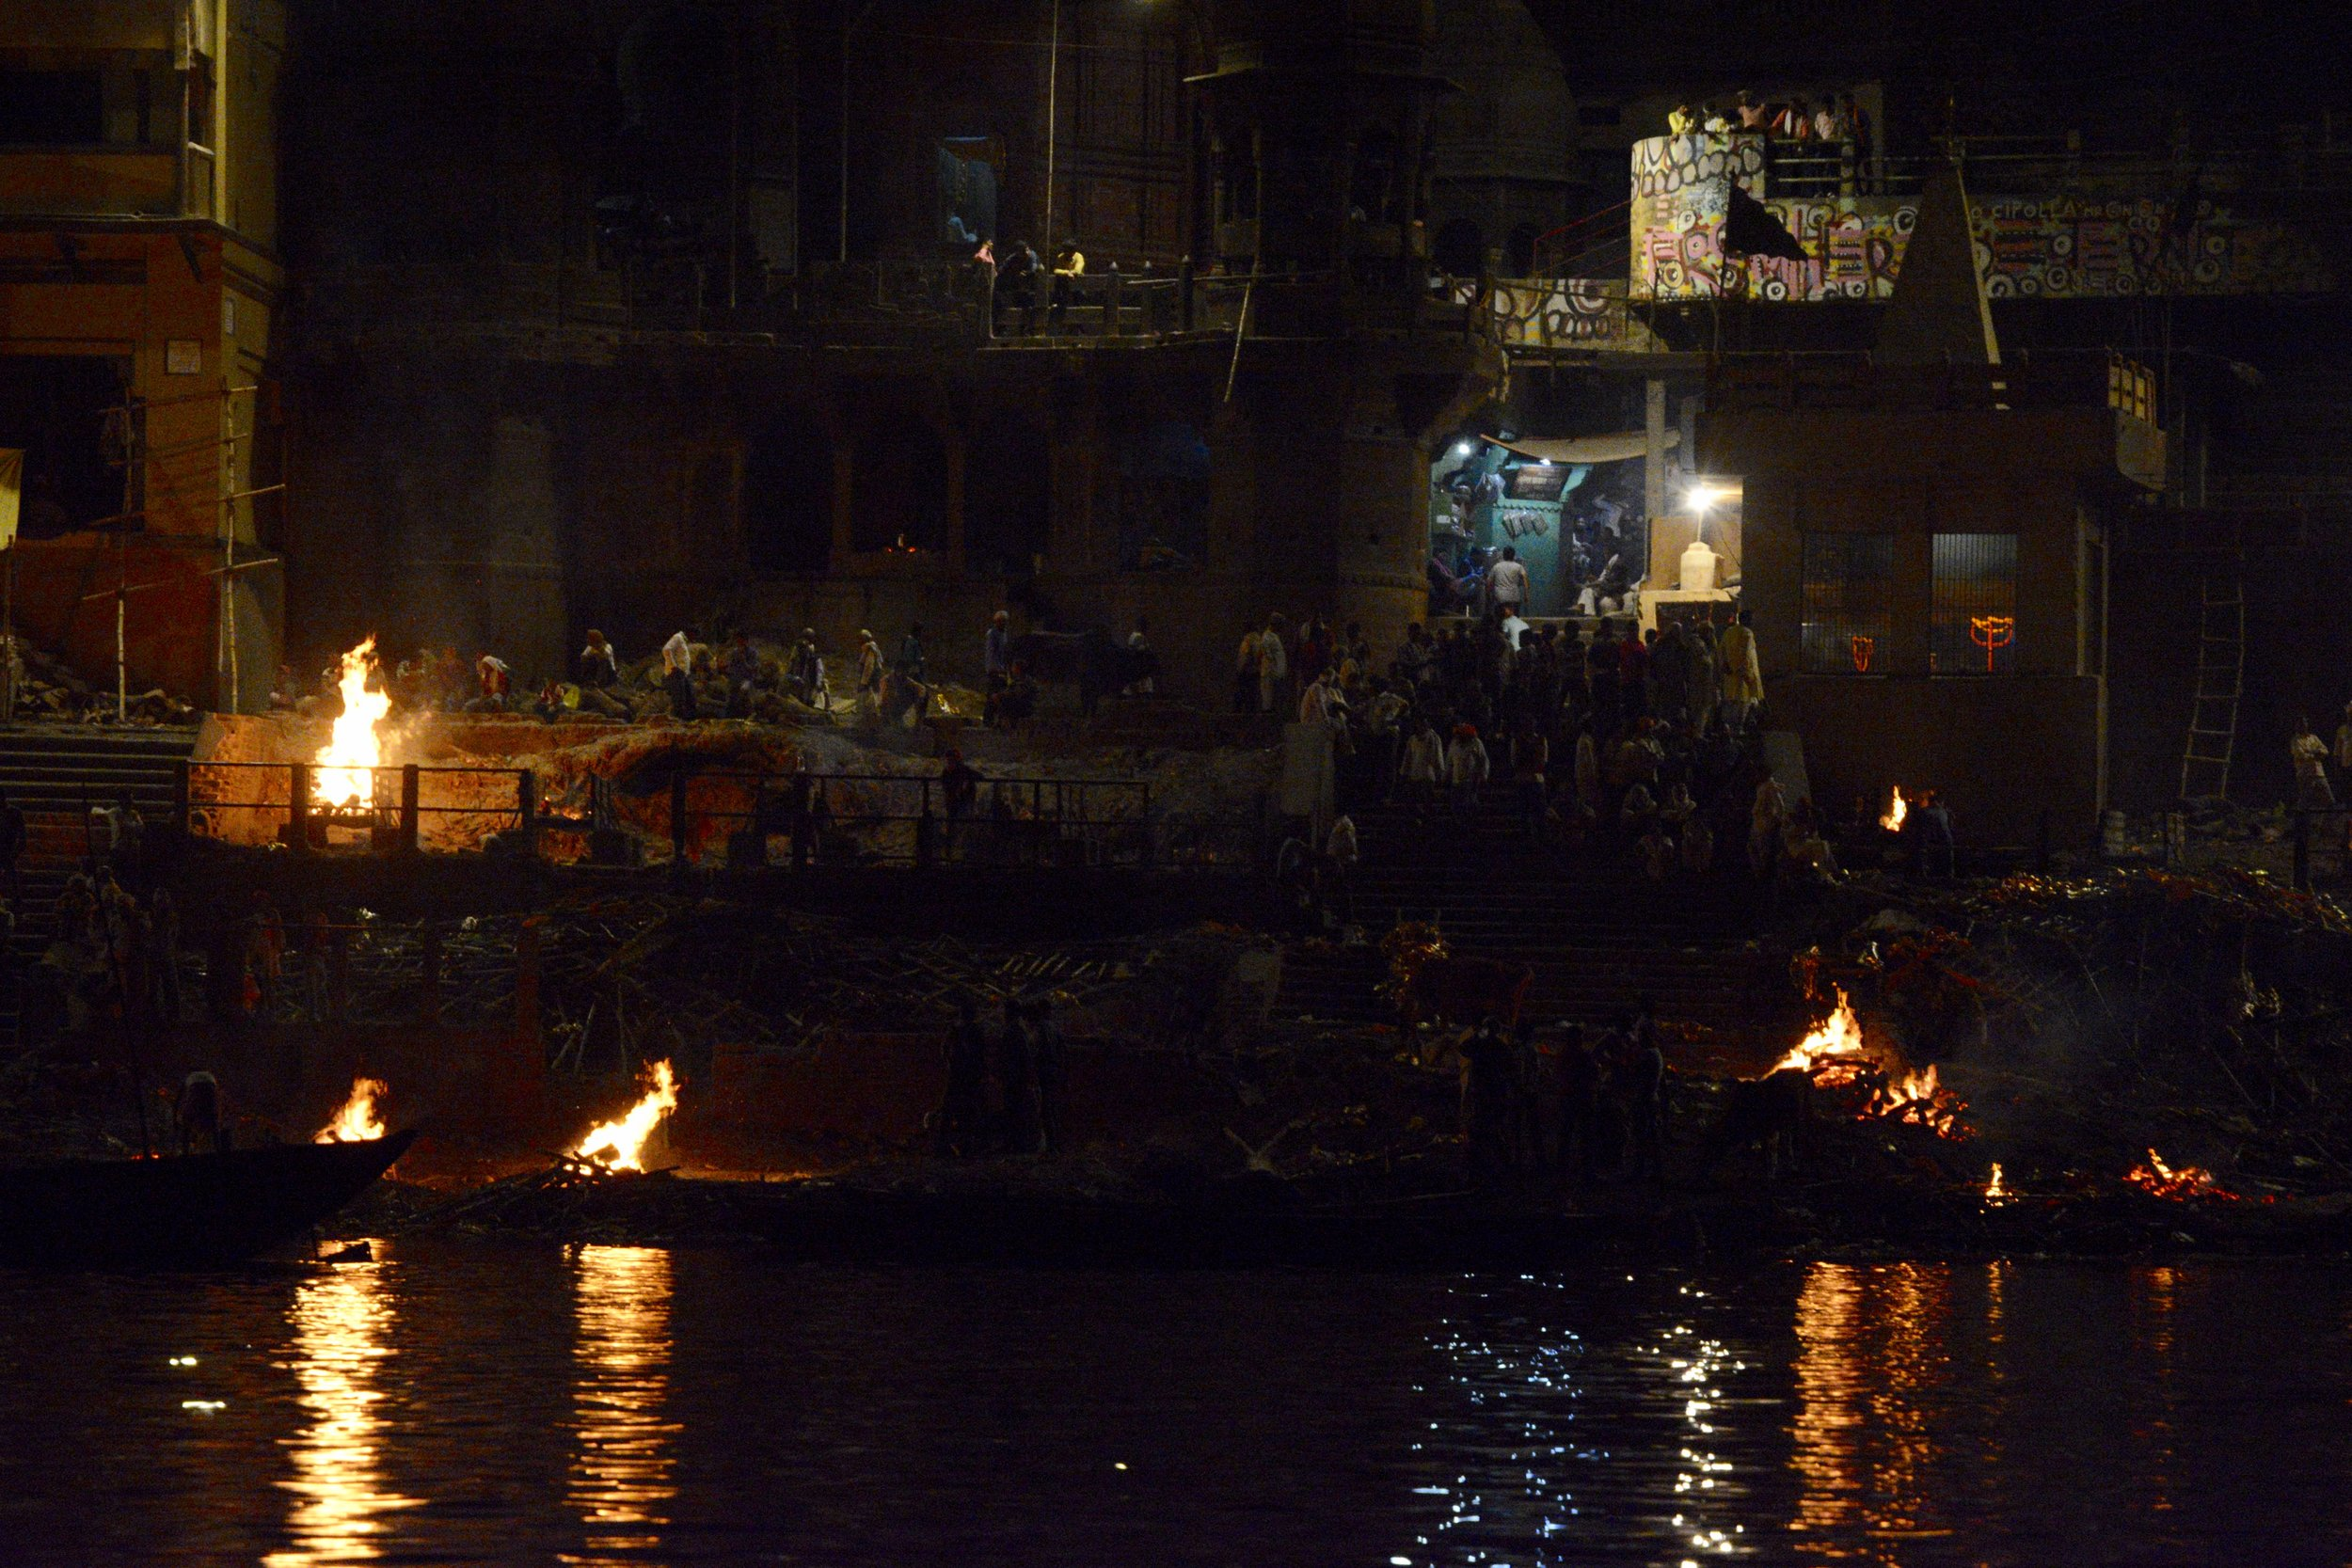 The burning ghats at night.